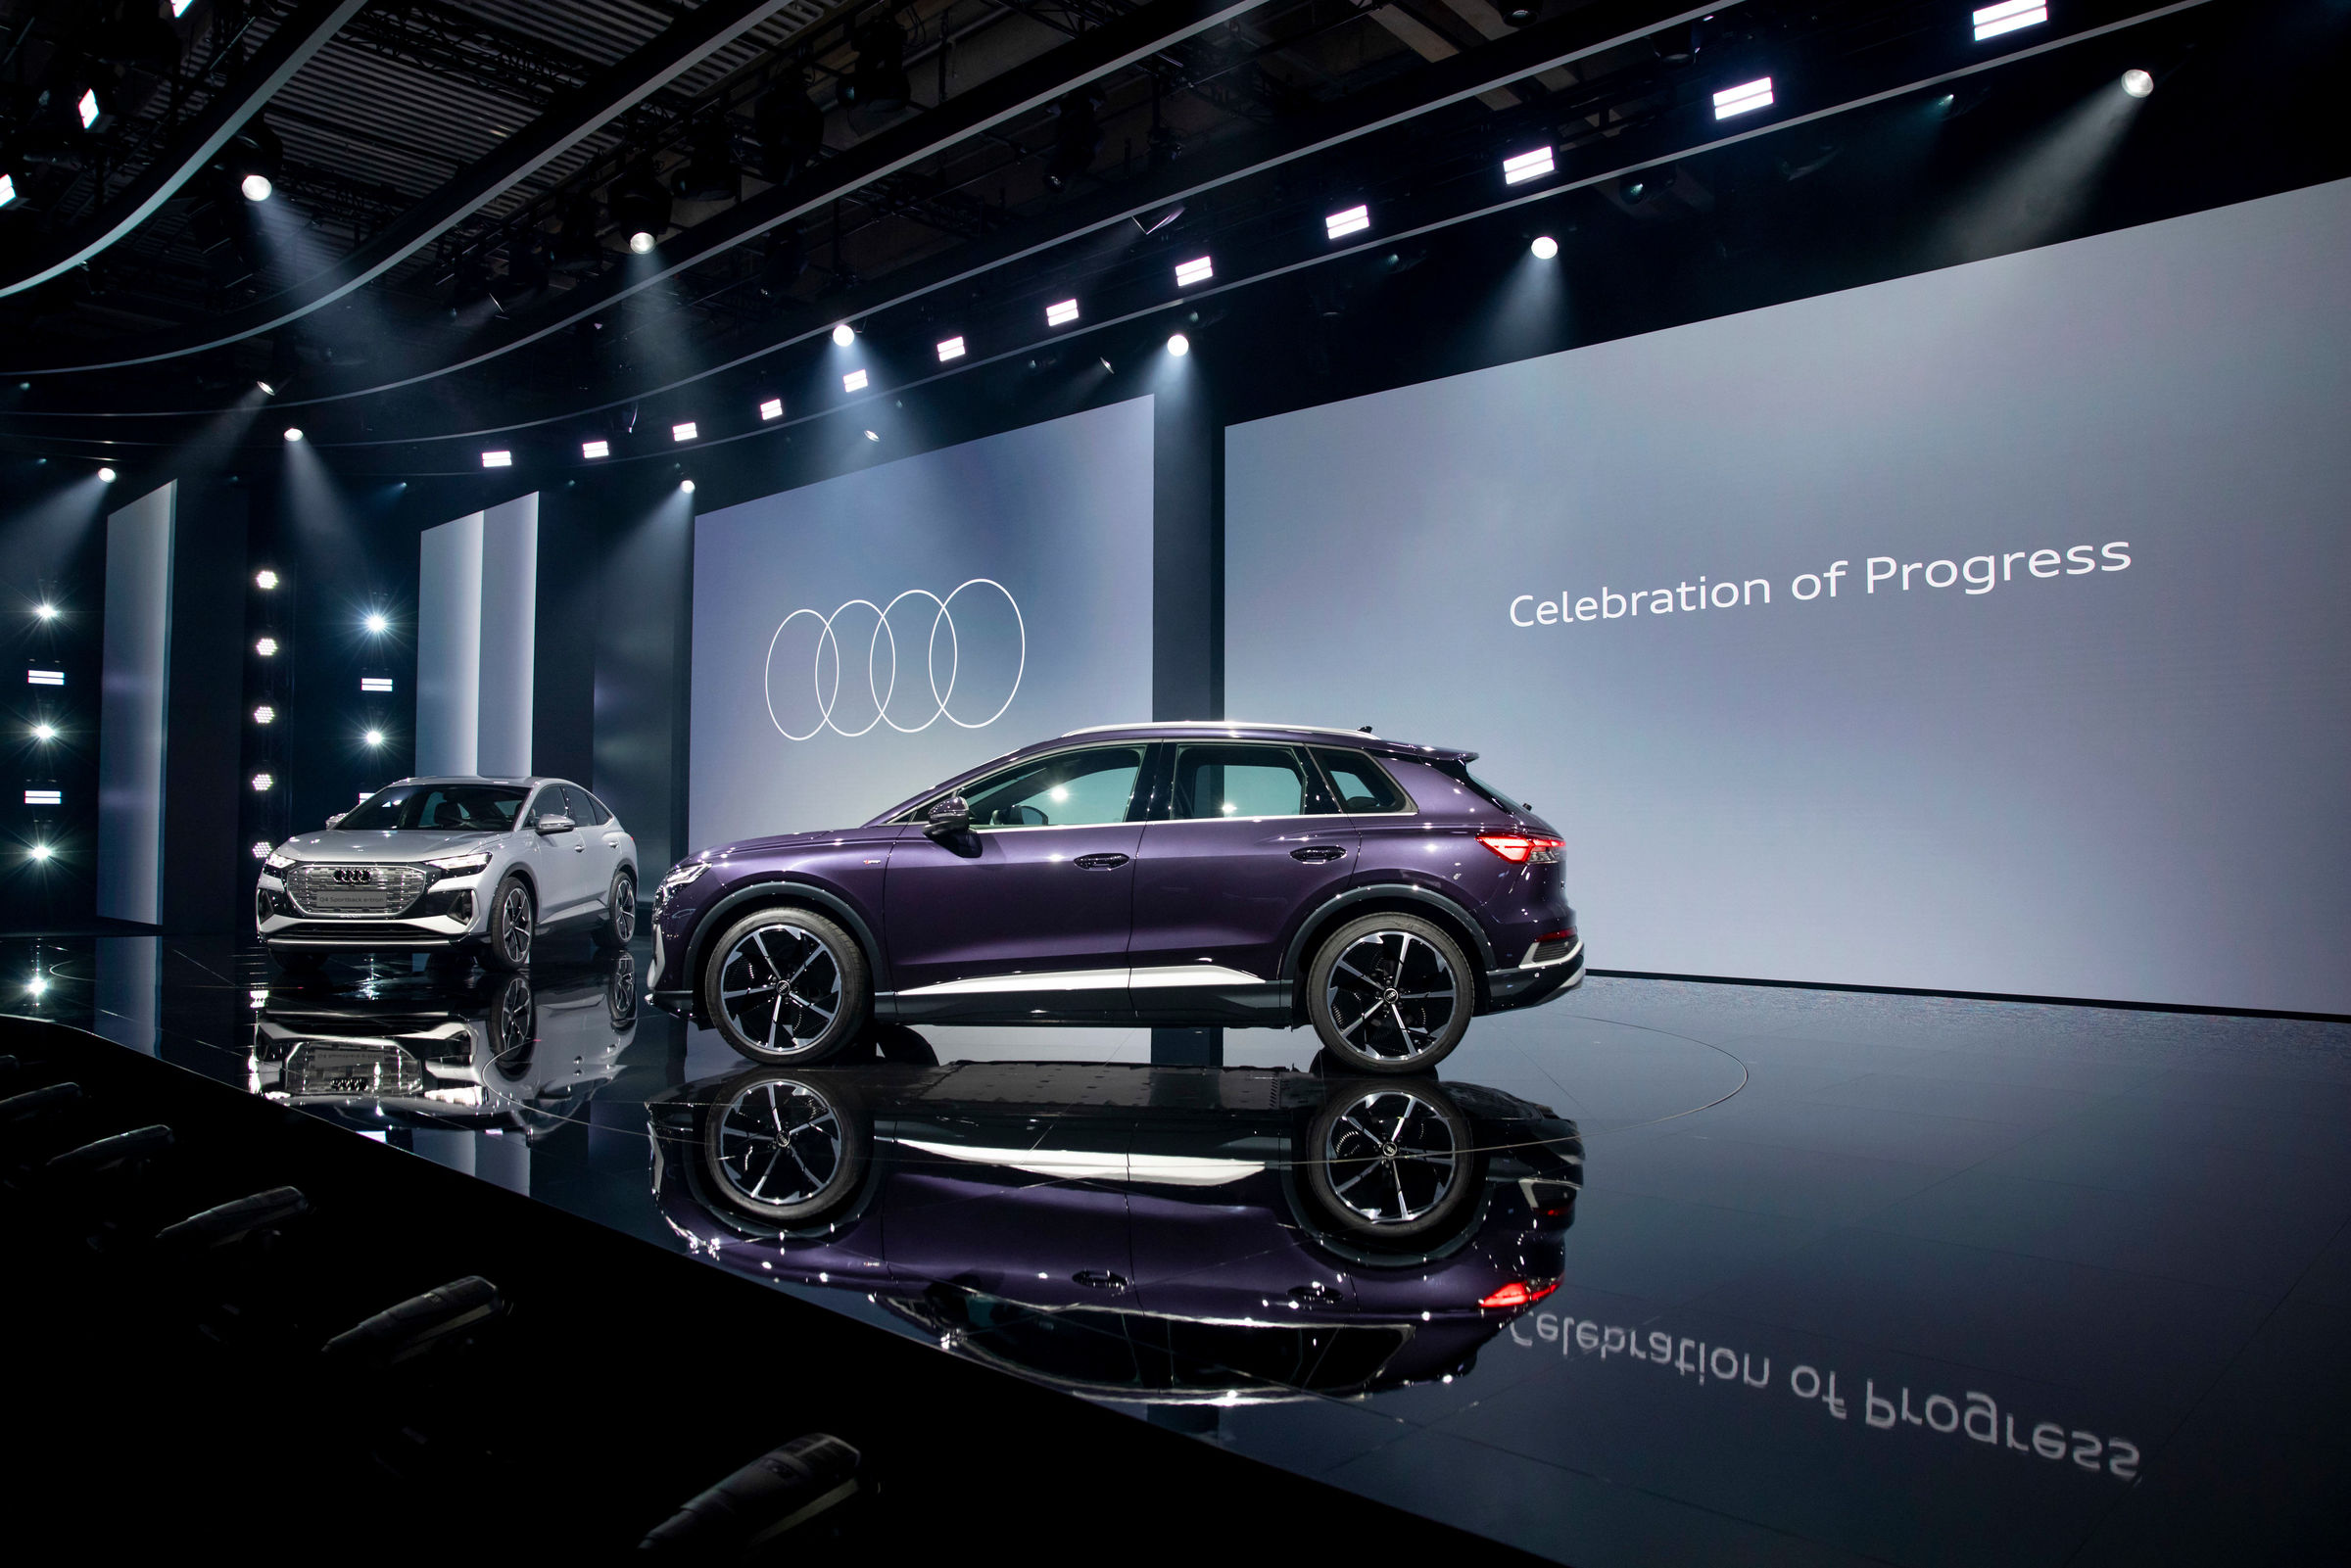 Electrifying: the online world premiere of the Audi Q4 e-tron - Image 6